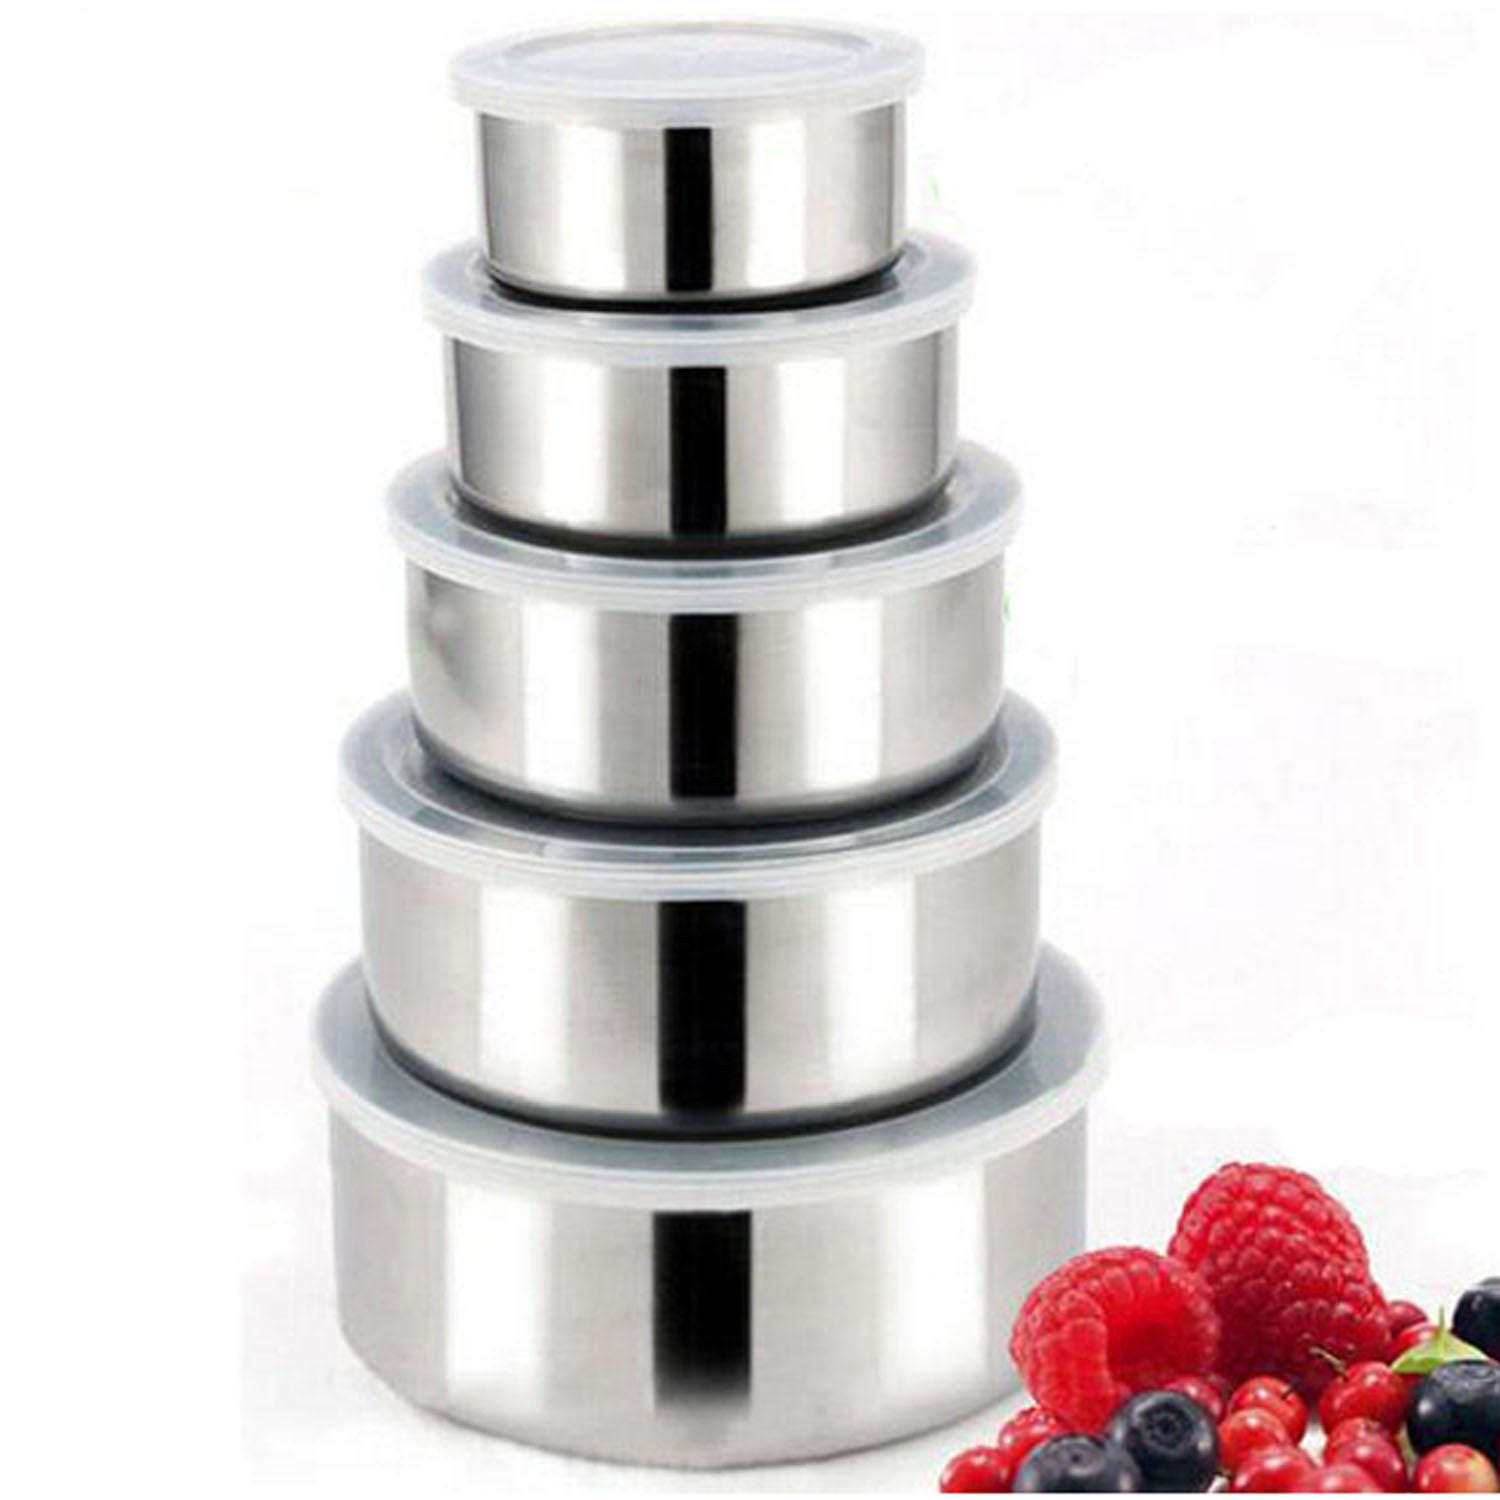 Stainless steel storage containers for kitchen - Aeproduct Getsubject